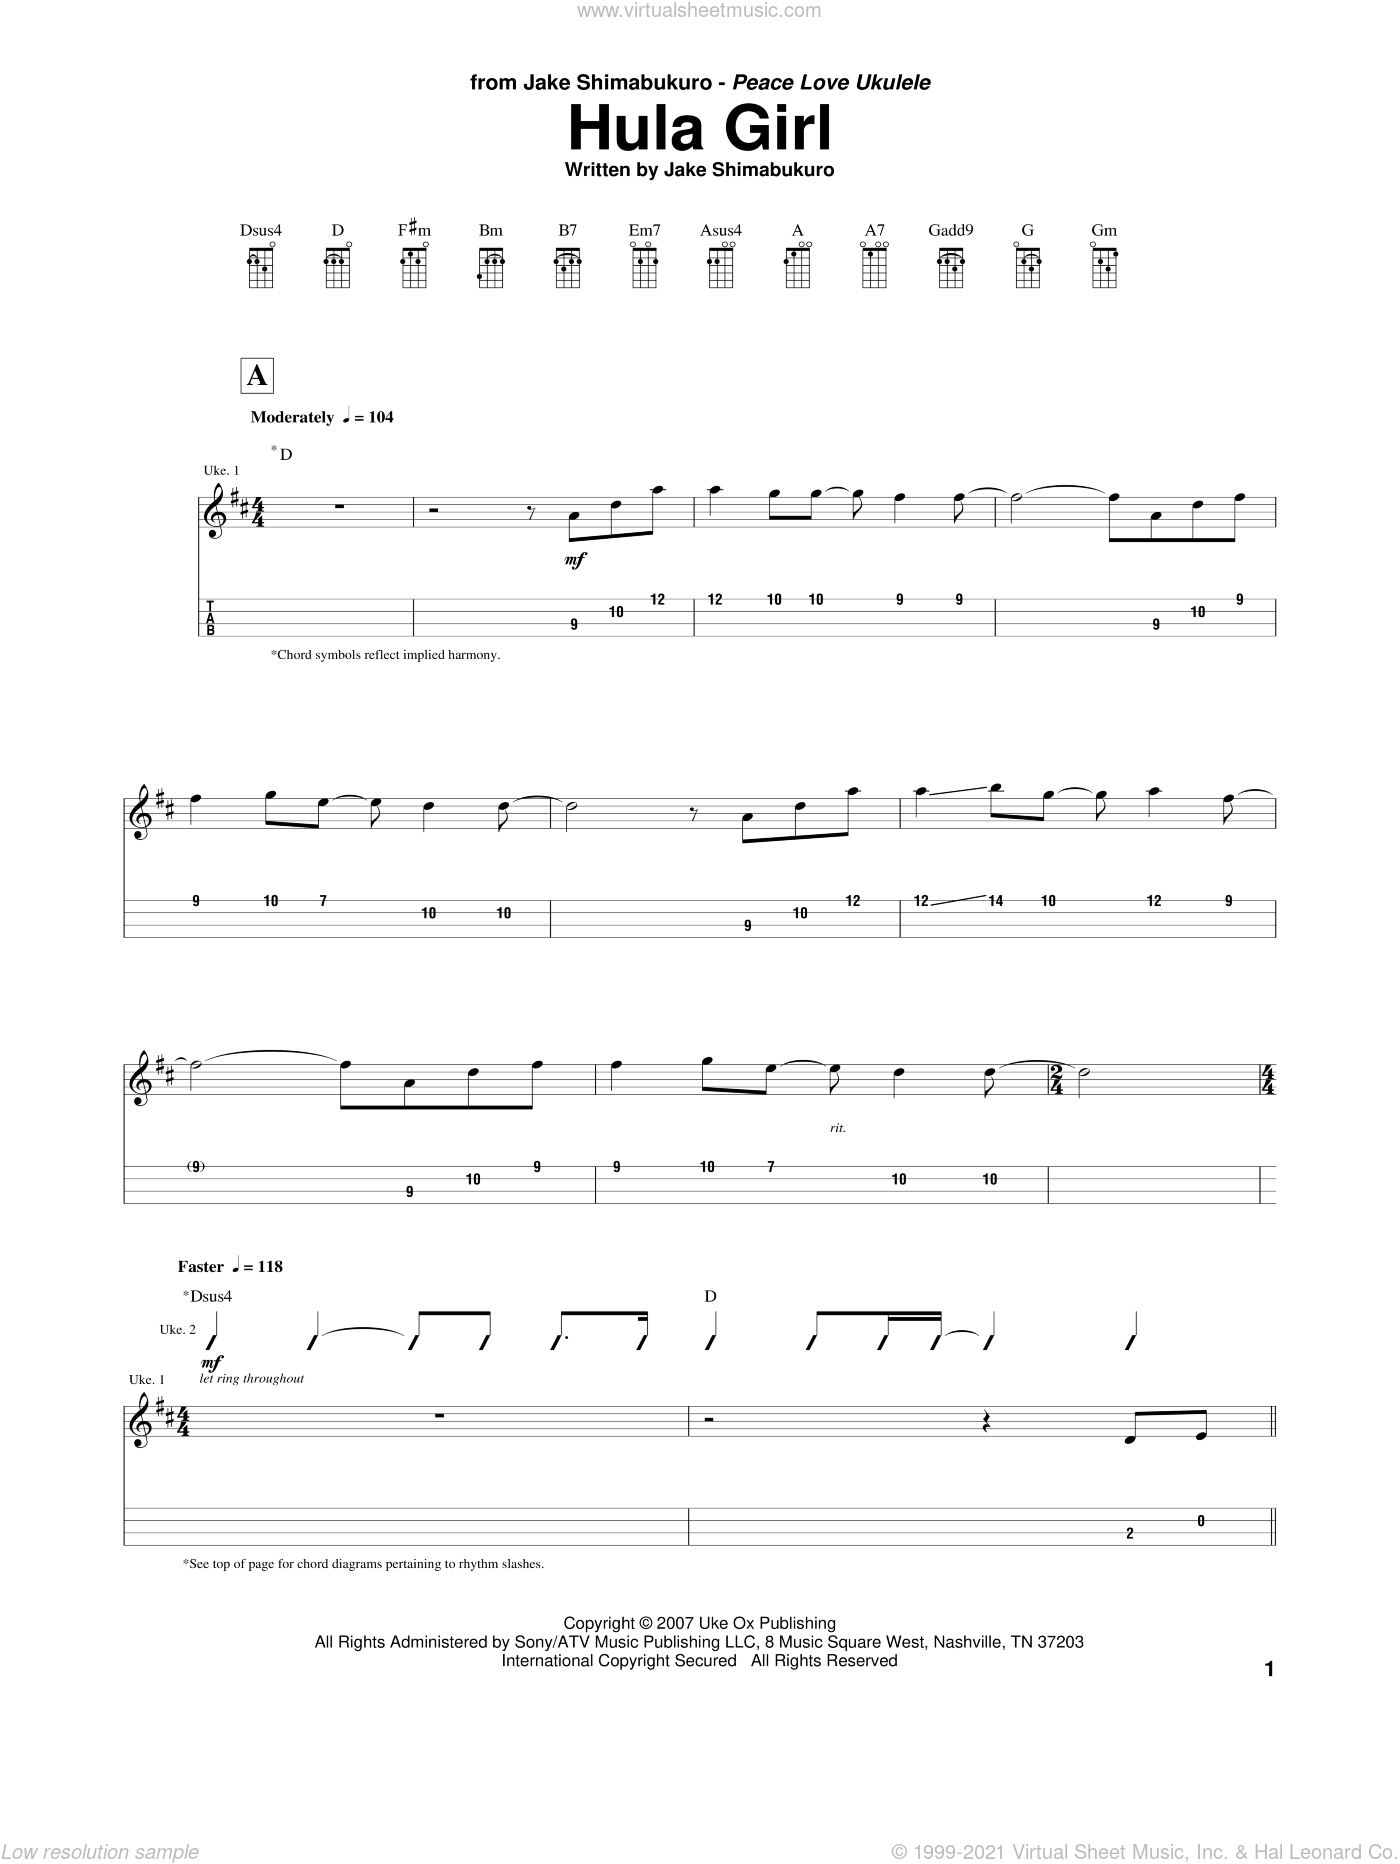 Hula Girl sheet music for ukulele by Jake Shimabukuro